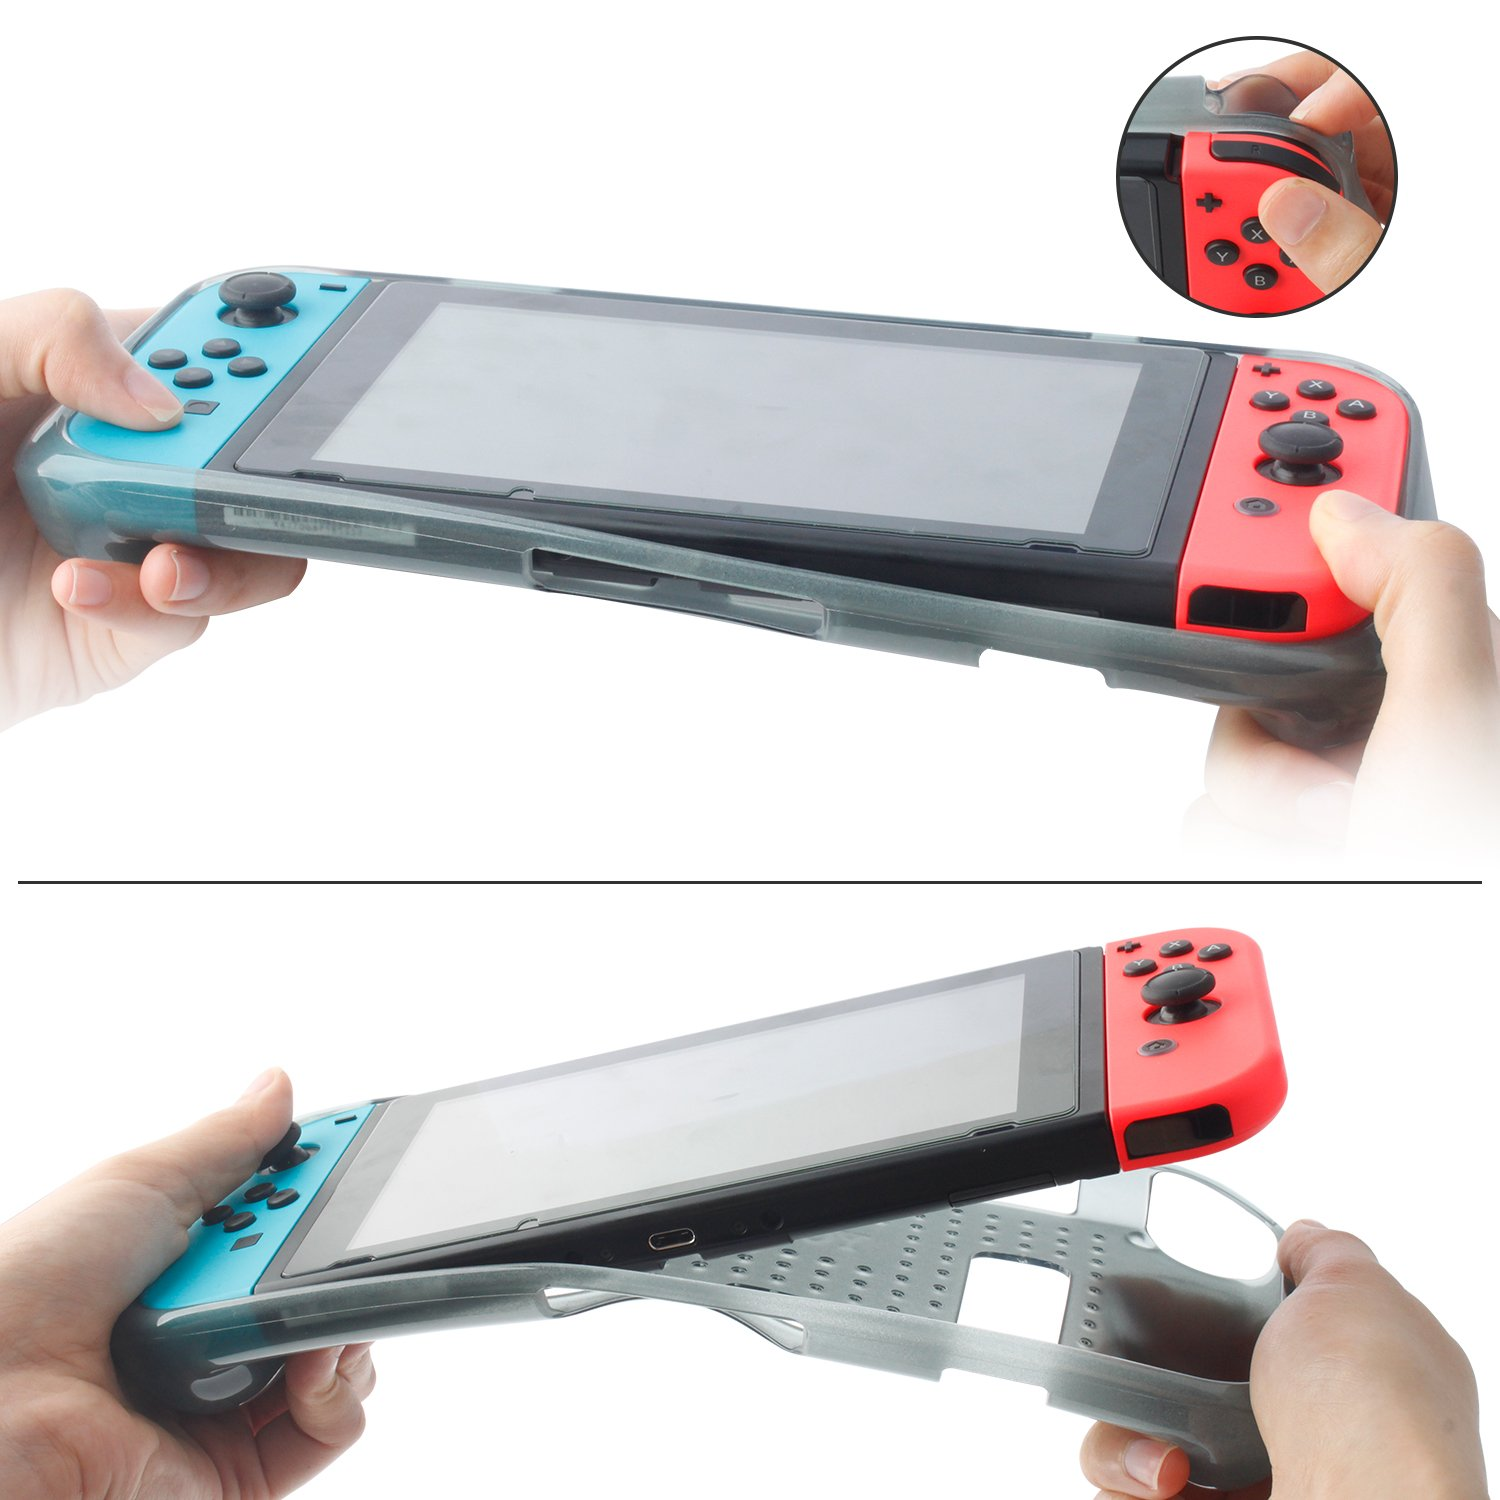 Protective Case for Nintendo Switch 2018,Grip Cover Case with Shock-Absorption and Anti-Scratch Design Soft & Comfortable TPU Case for Nintendo Switch Console (Grey)